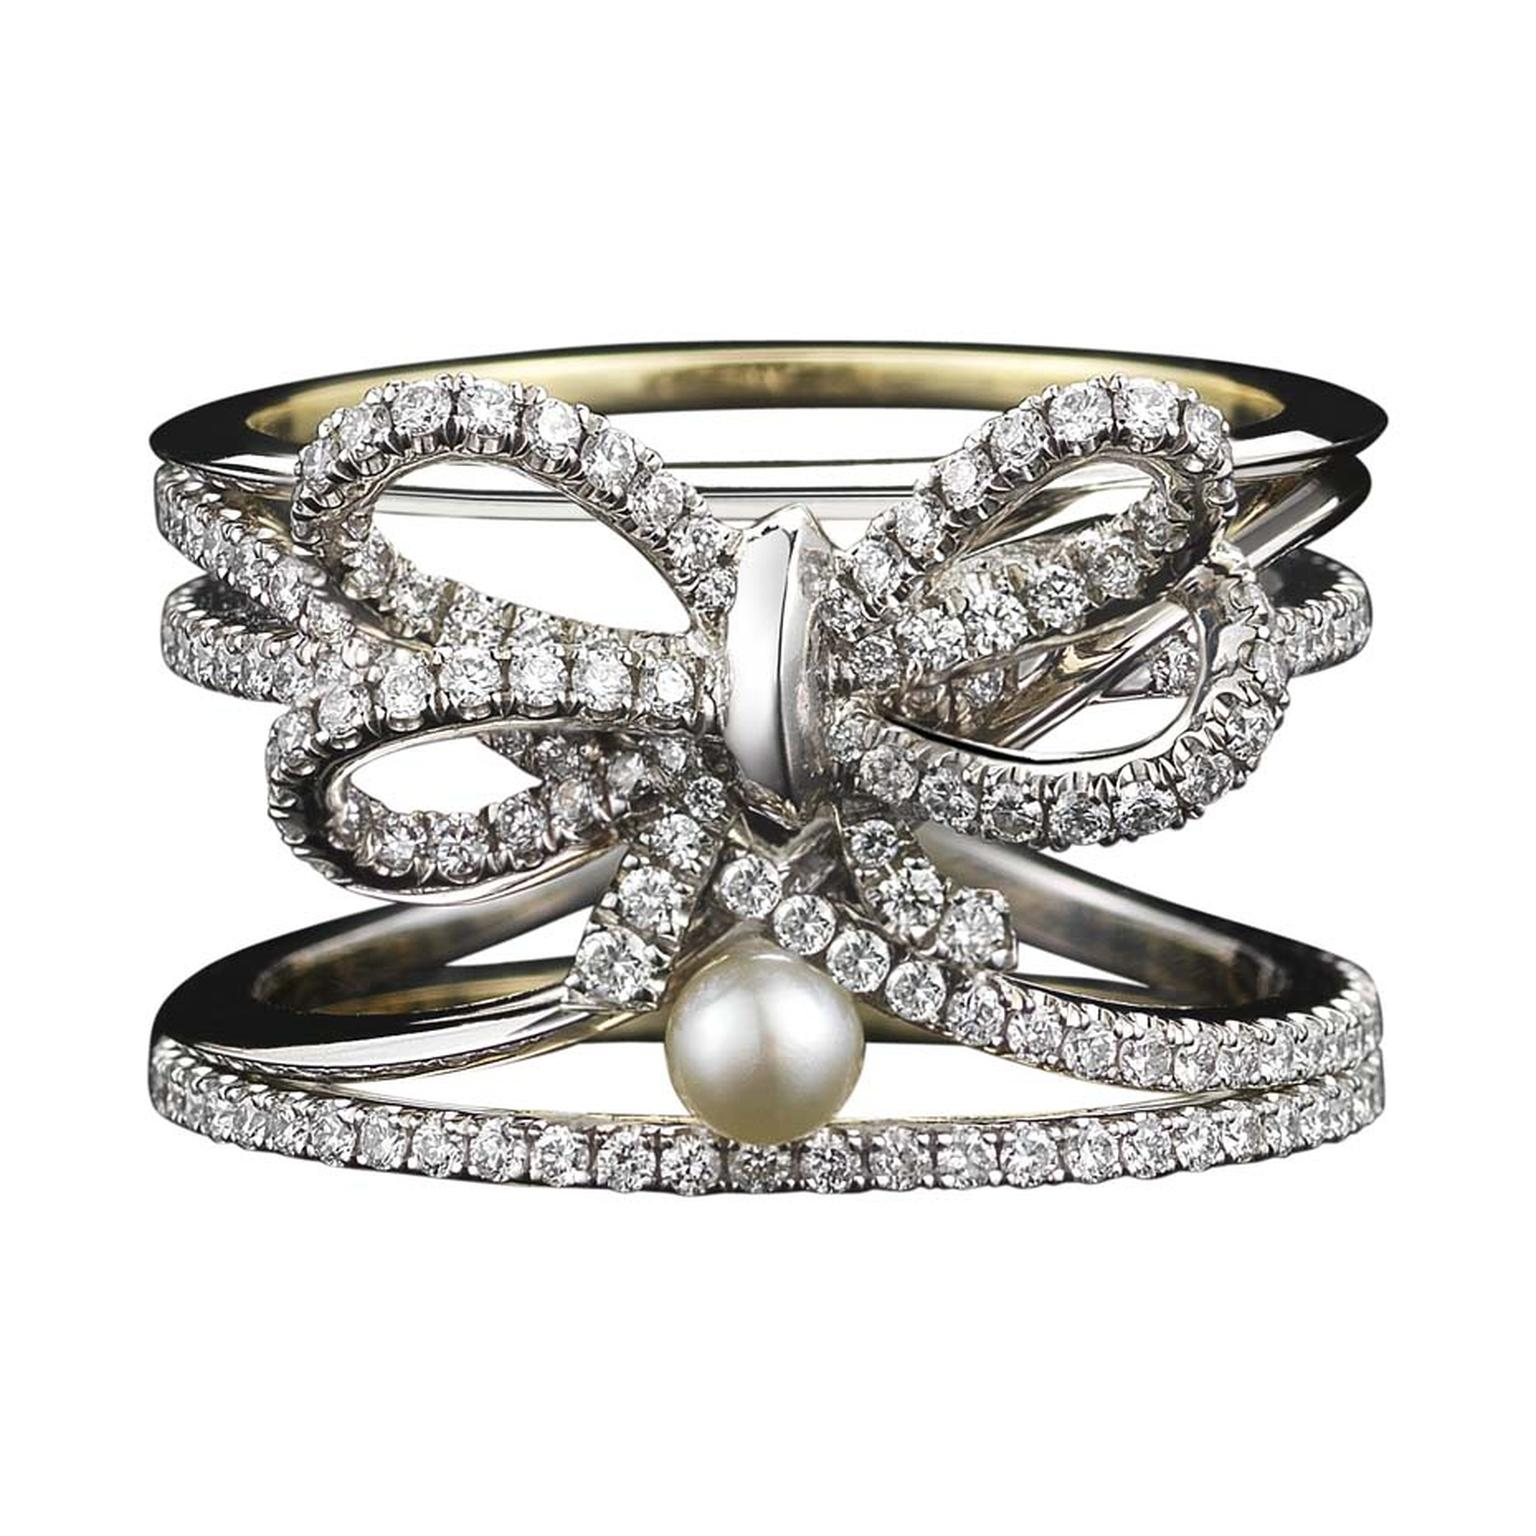 Limited edition Alexandra Mor diamond bow and pearl ring set with knife-edged wire and 'floating' diamond melee.